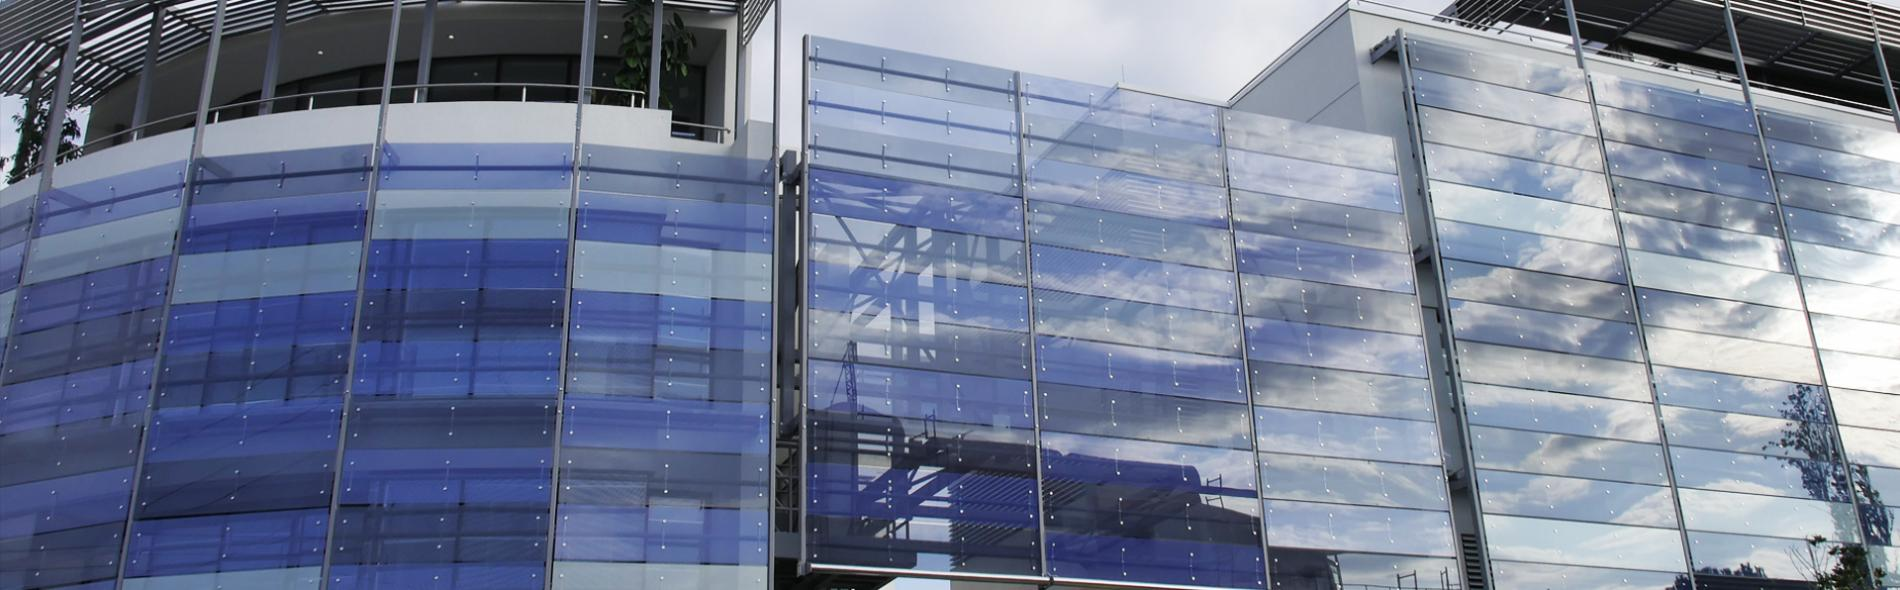 Motorized Glass Louvers - Architectural Solar Shading - Bespoke Facades